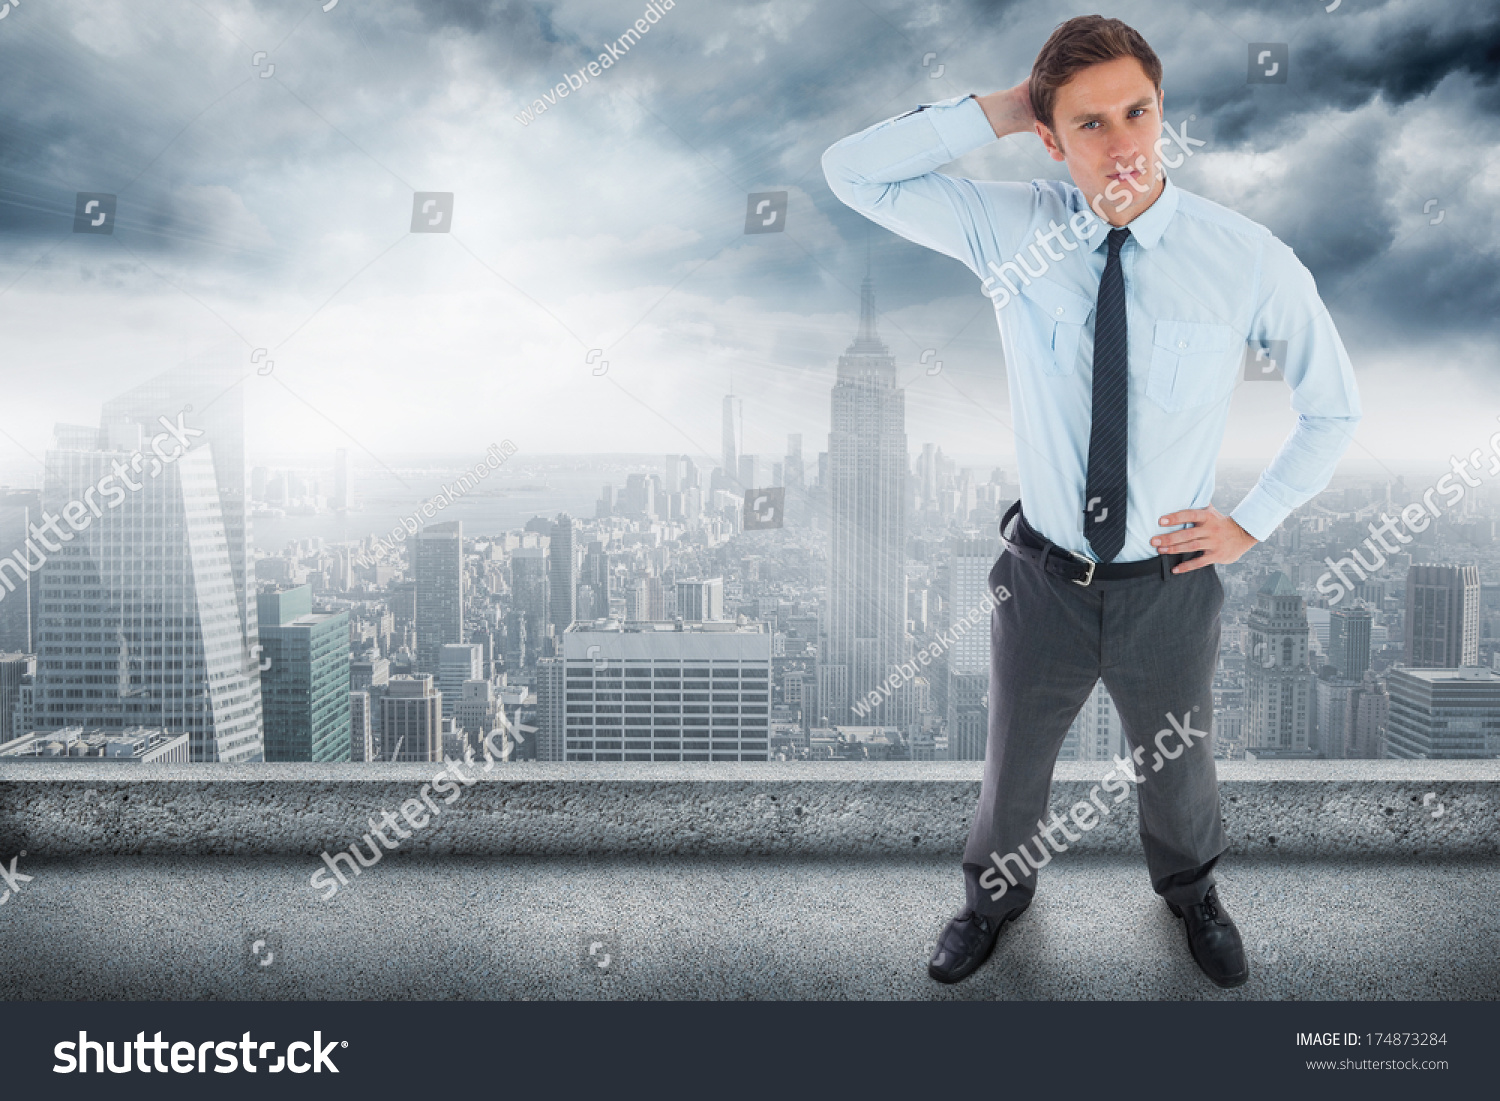 Thinking businessman hand on head against stock photo for Balcony overlooking city